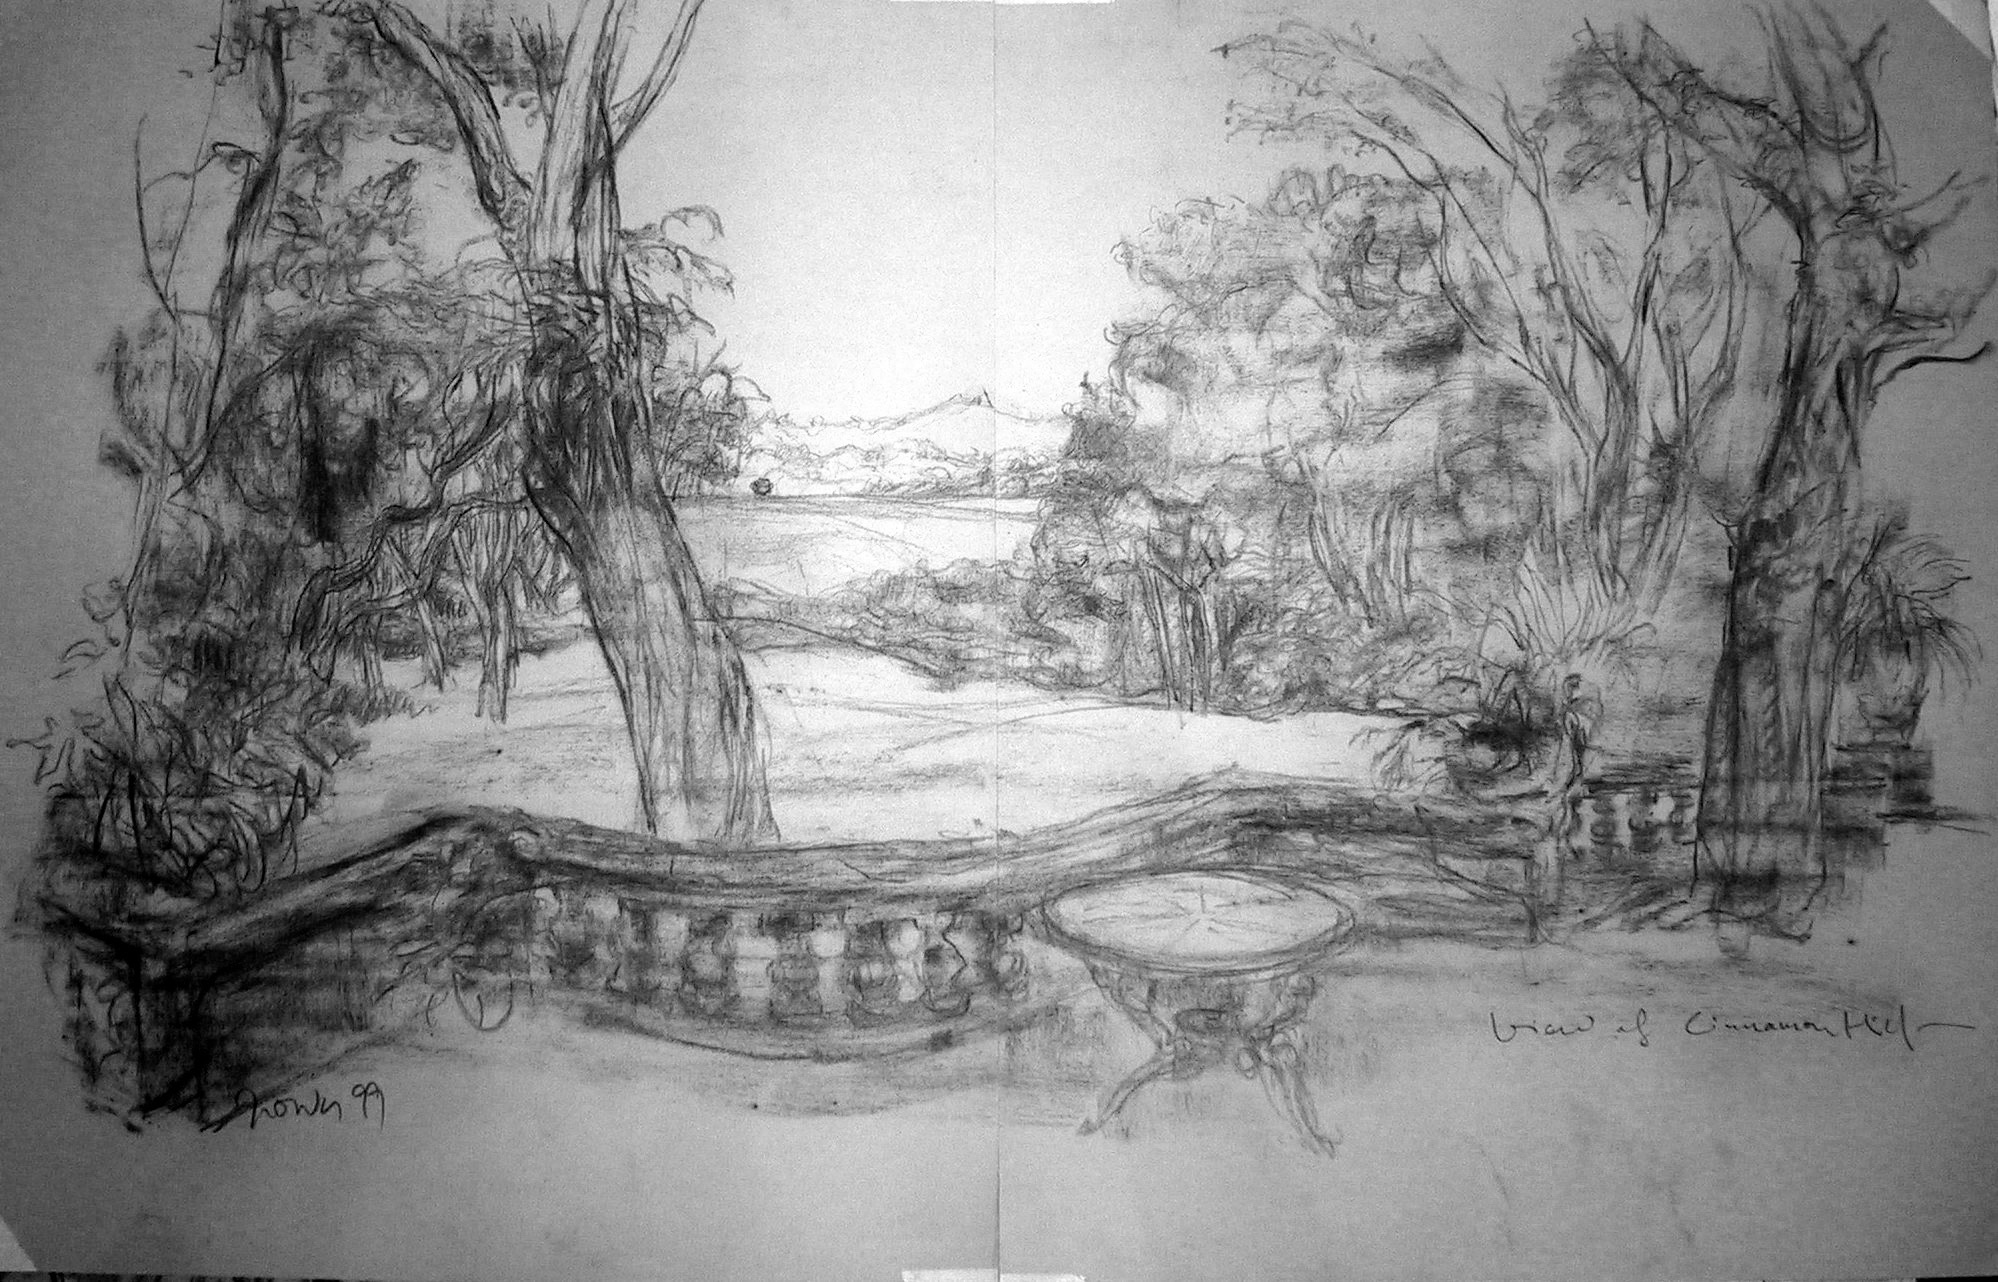 Jimmy ONG  View of Cinnamon Hill  1999 Charcoal on paper H61 x W48 cm (each; diptych)